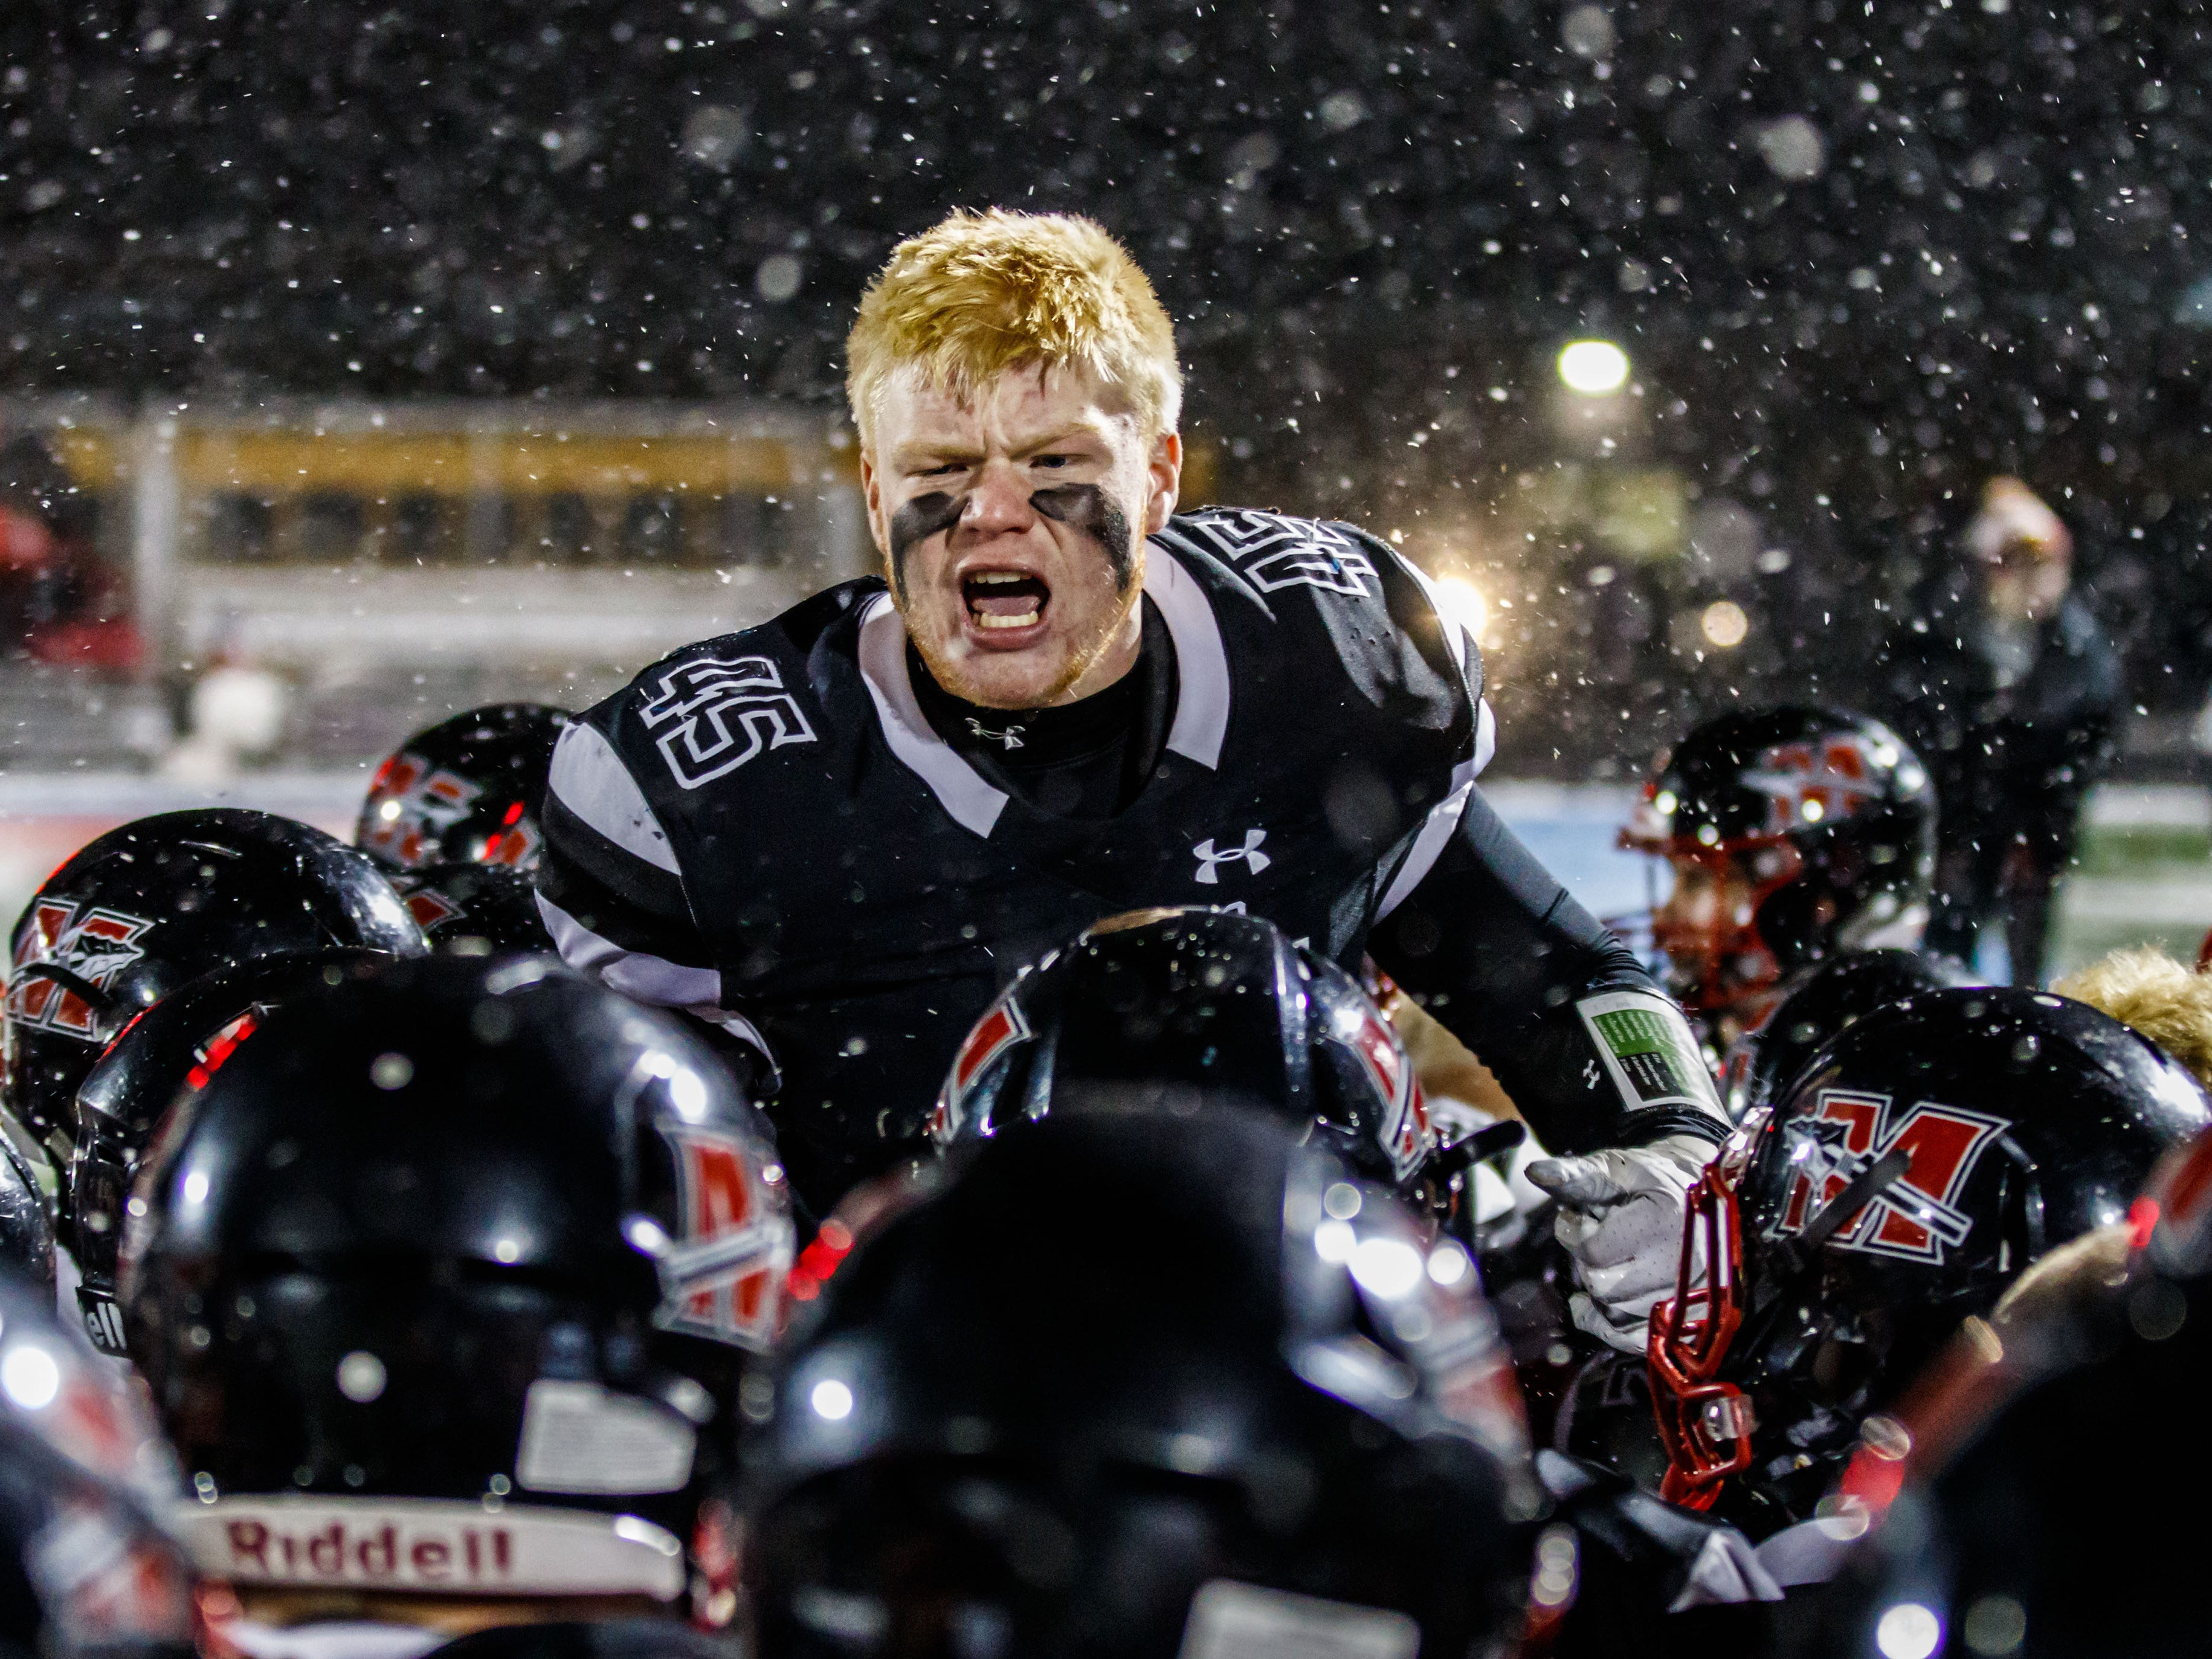 Muskego High School senior Mitch Borkovec fires up his team prior to the WIAA Division 1 playoff game against Marquette University High School in Hartland.